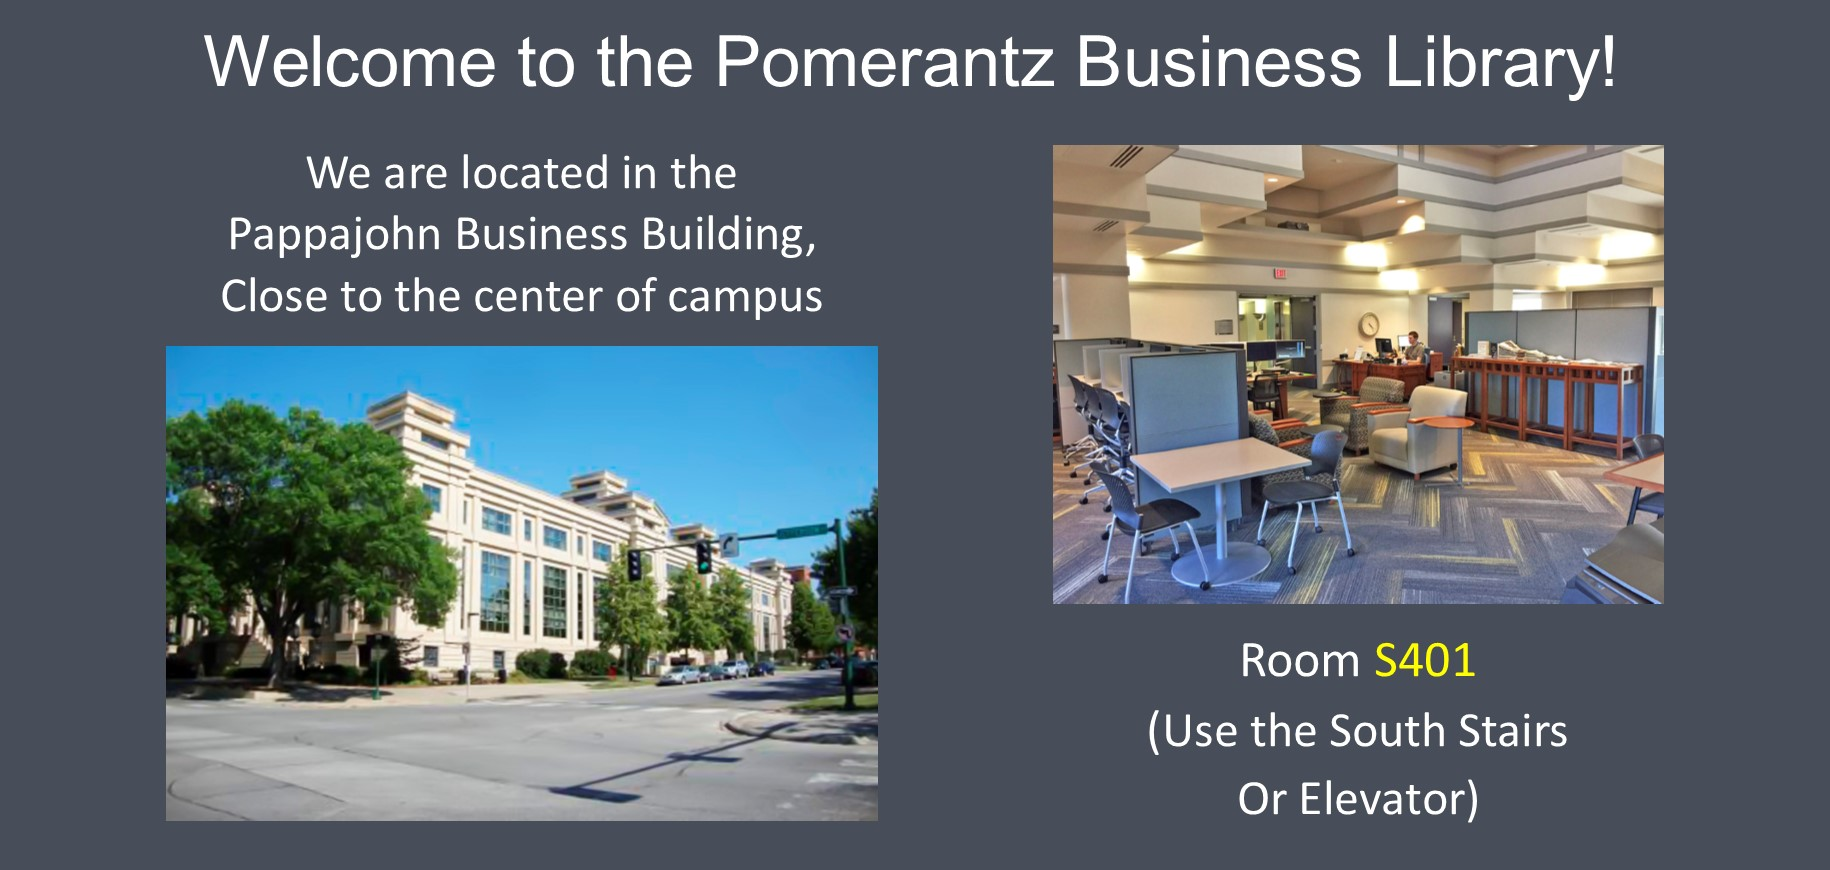 Welcome to the Pomerantz Business Library, located in room S401 in the Pappajohn Business Building